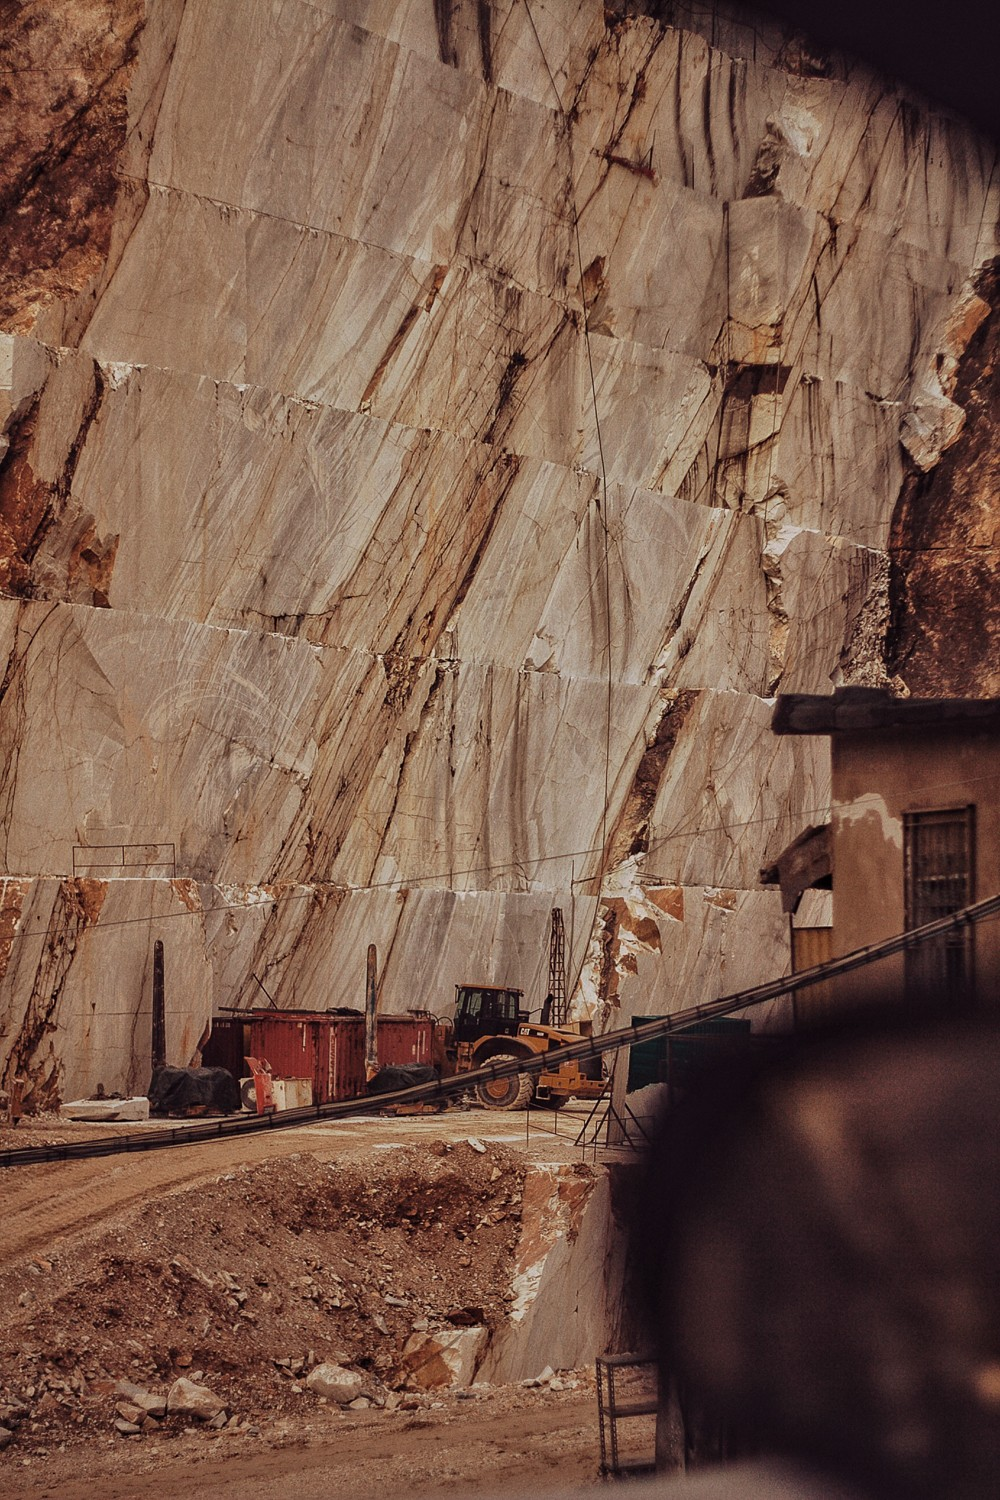 carrara marble caves